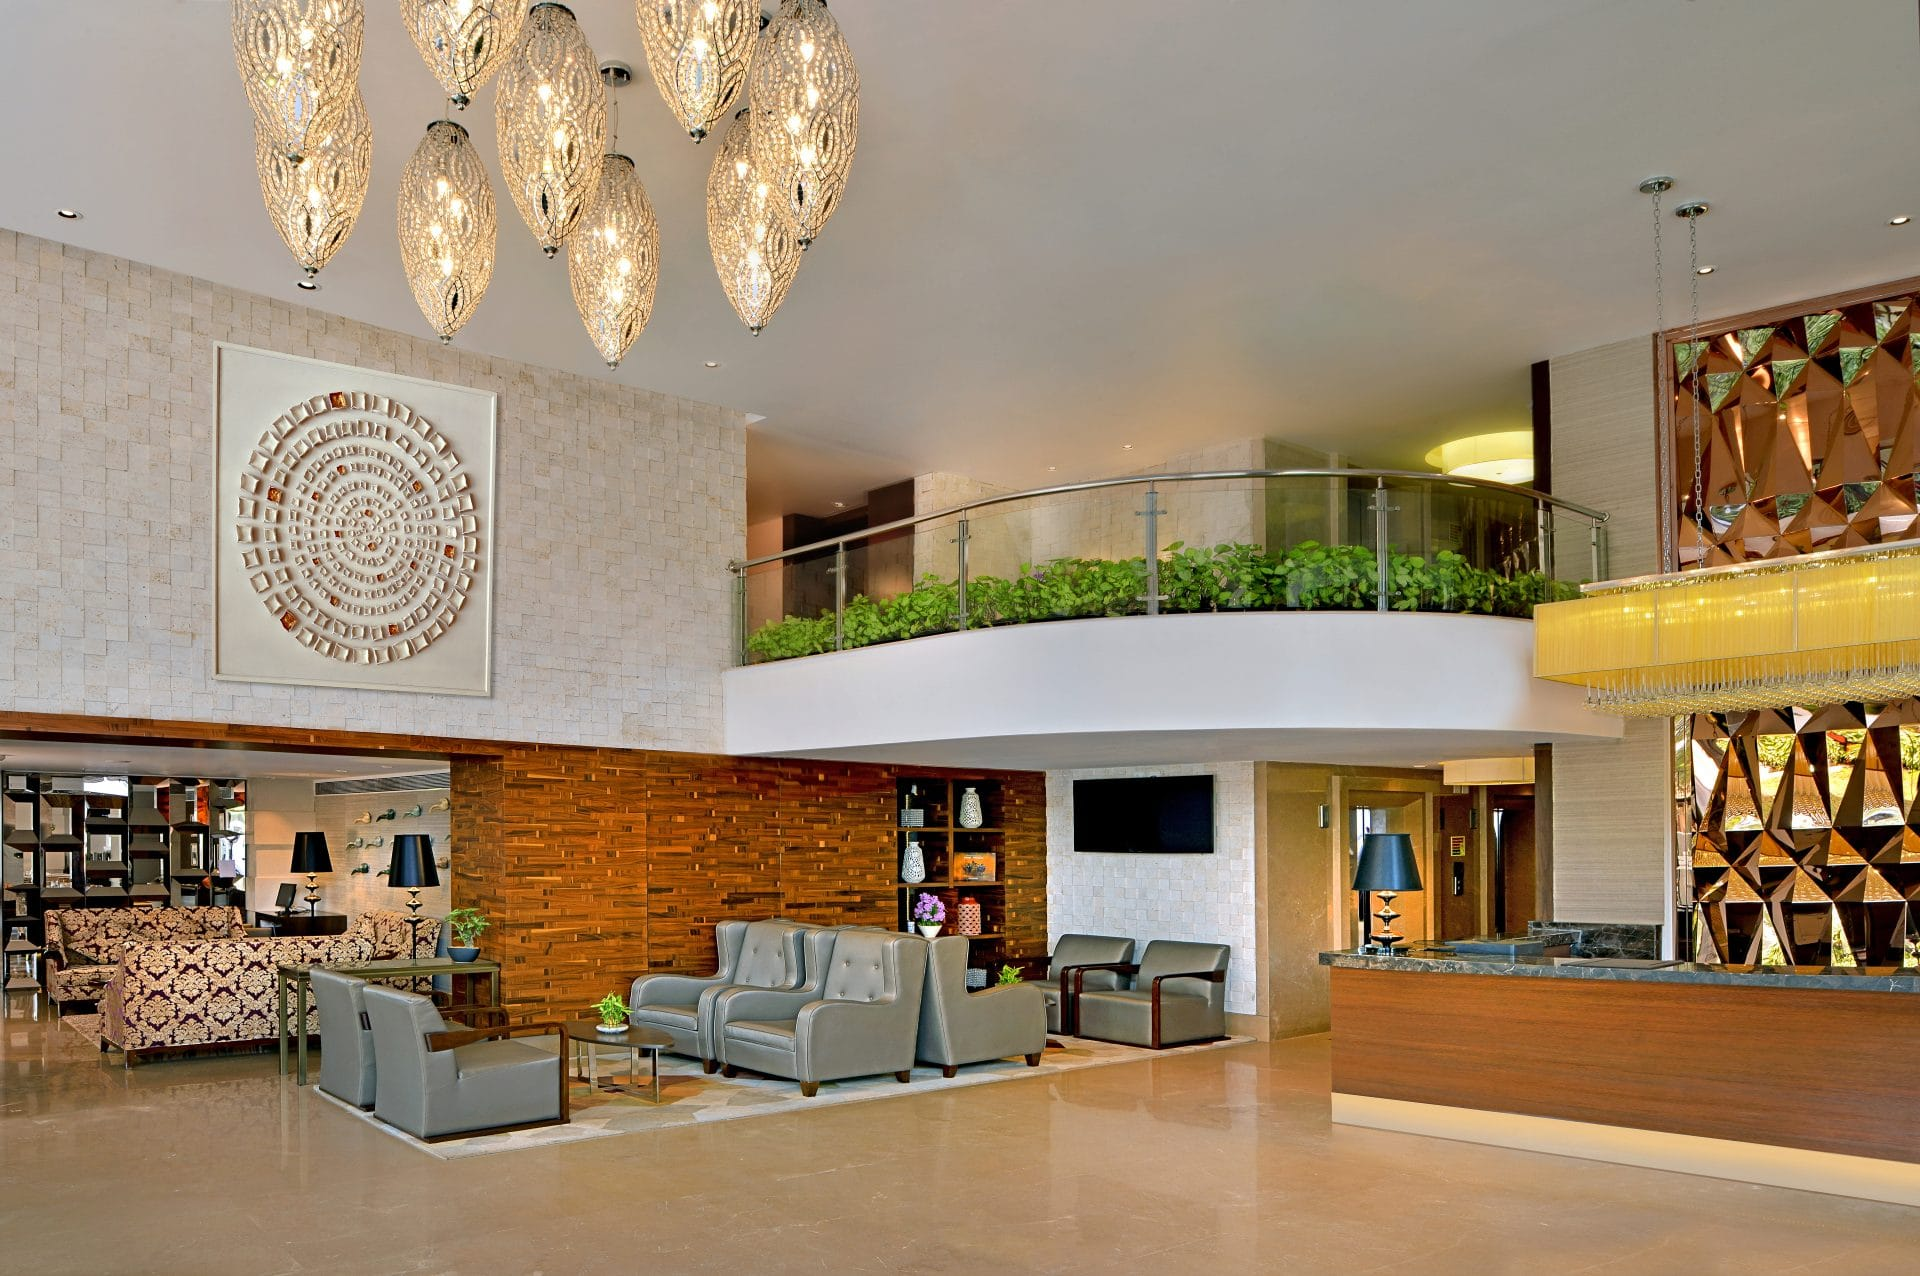 Country Inn Suites By Radisson Manipal Hotel Lobby